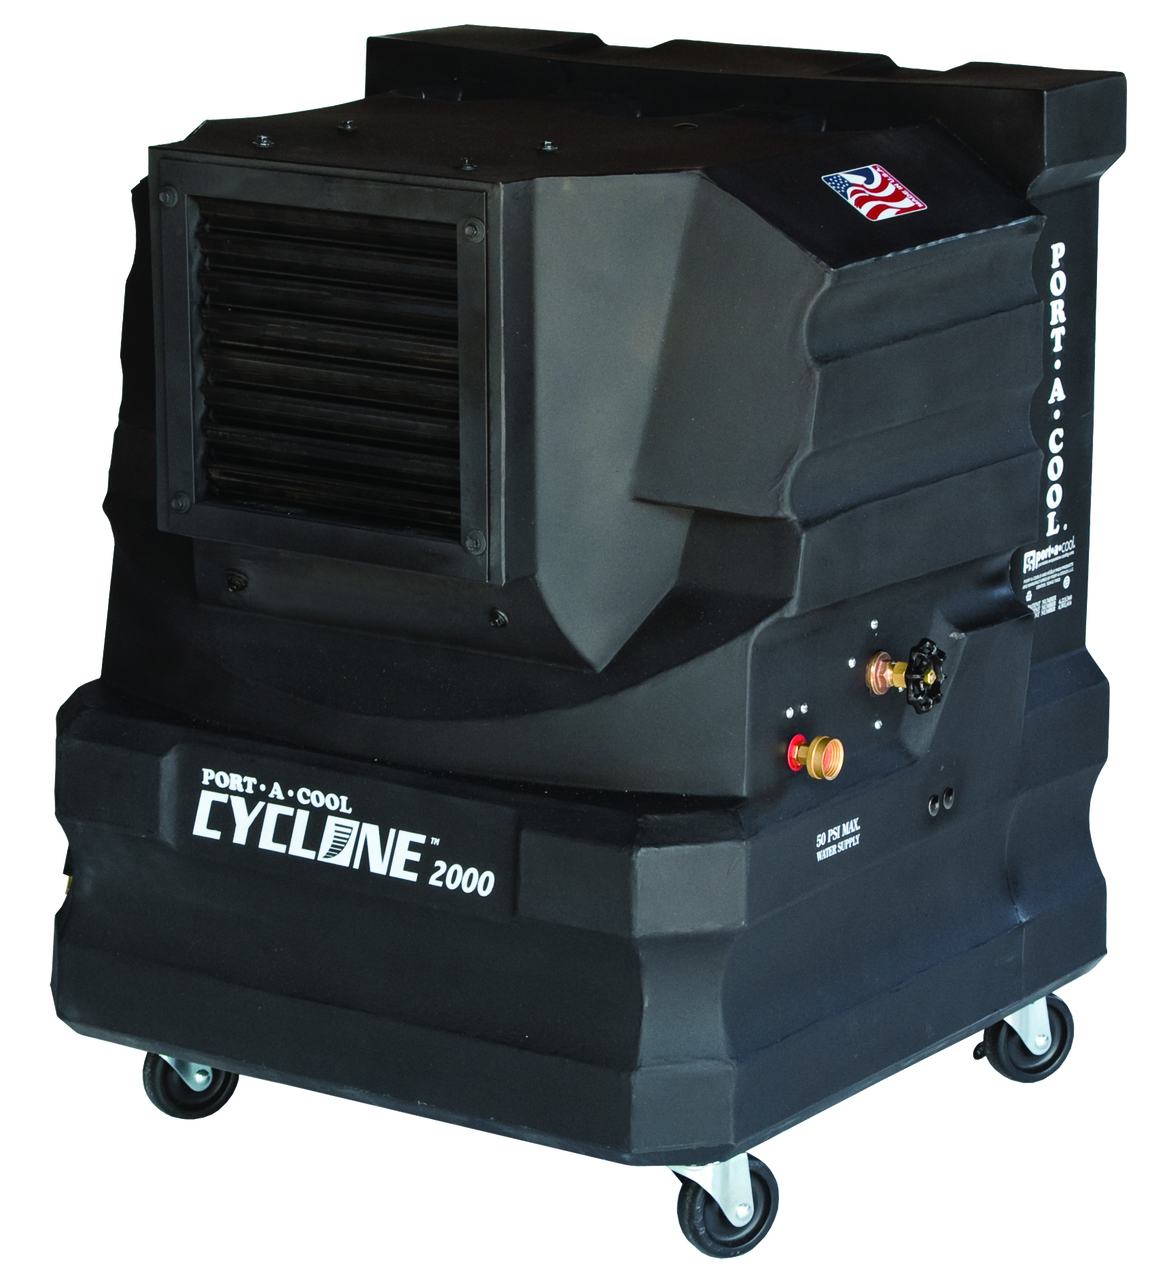 Port-A-Cool Cyclone 2000 Portable Evaporative Cooler - PACCYC02